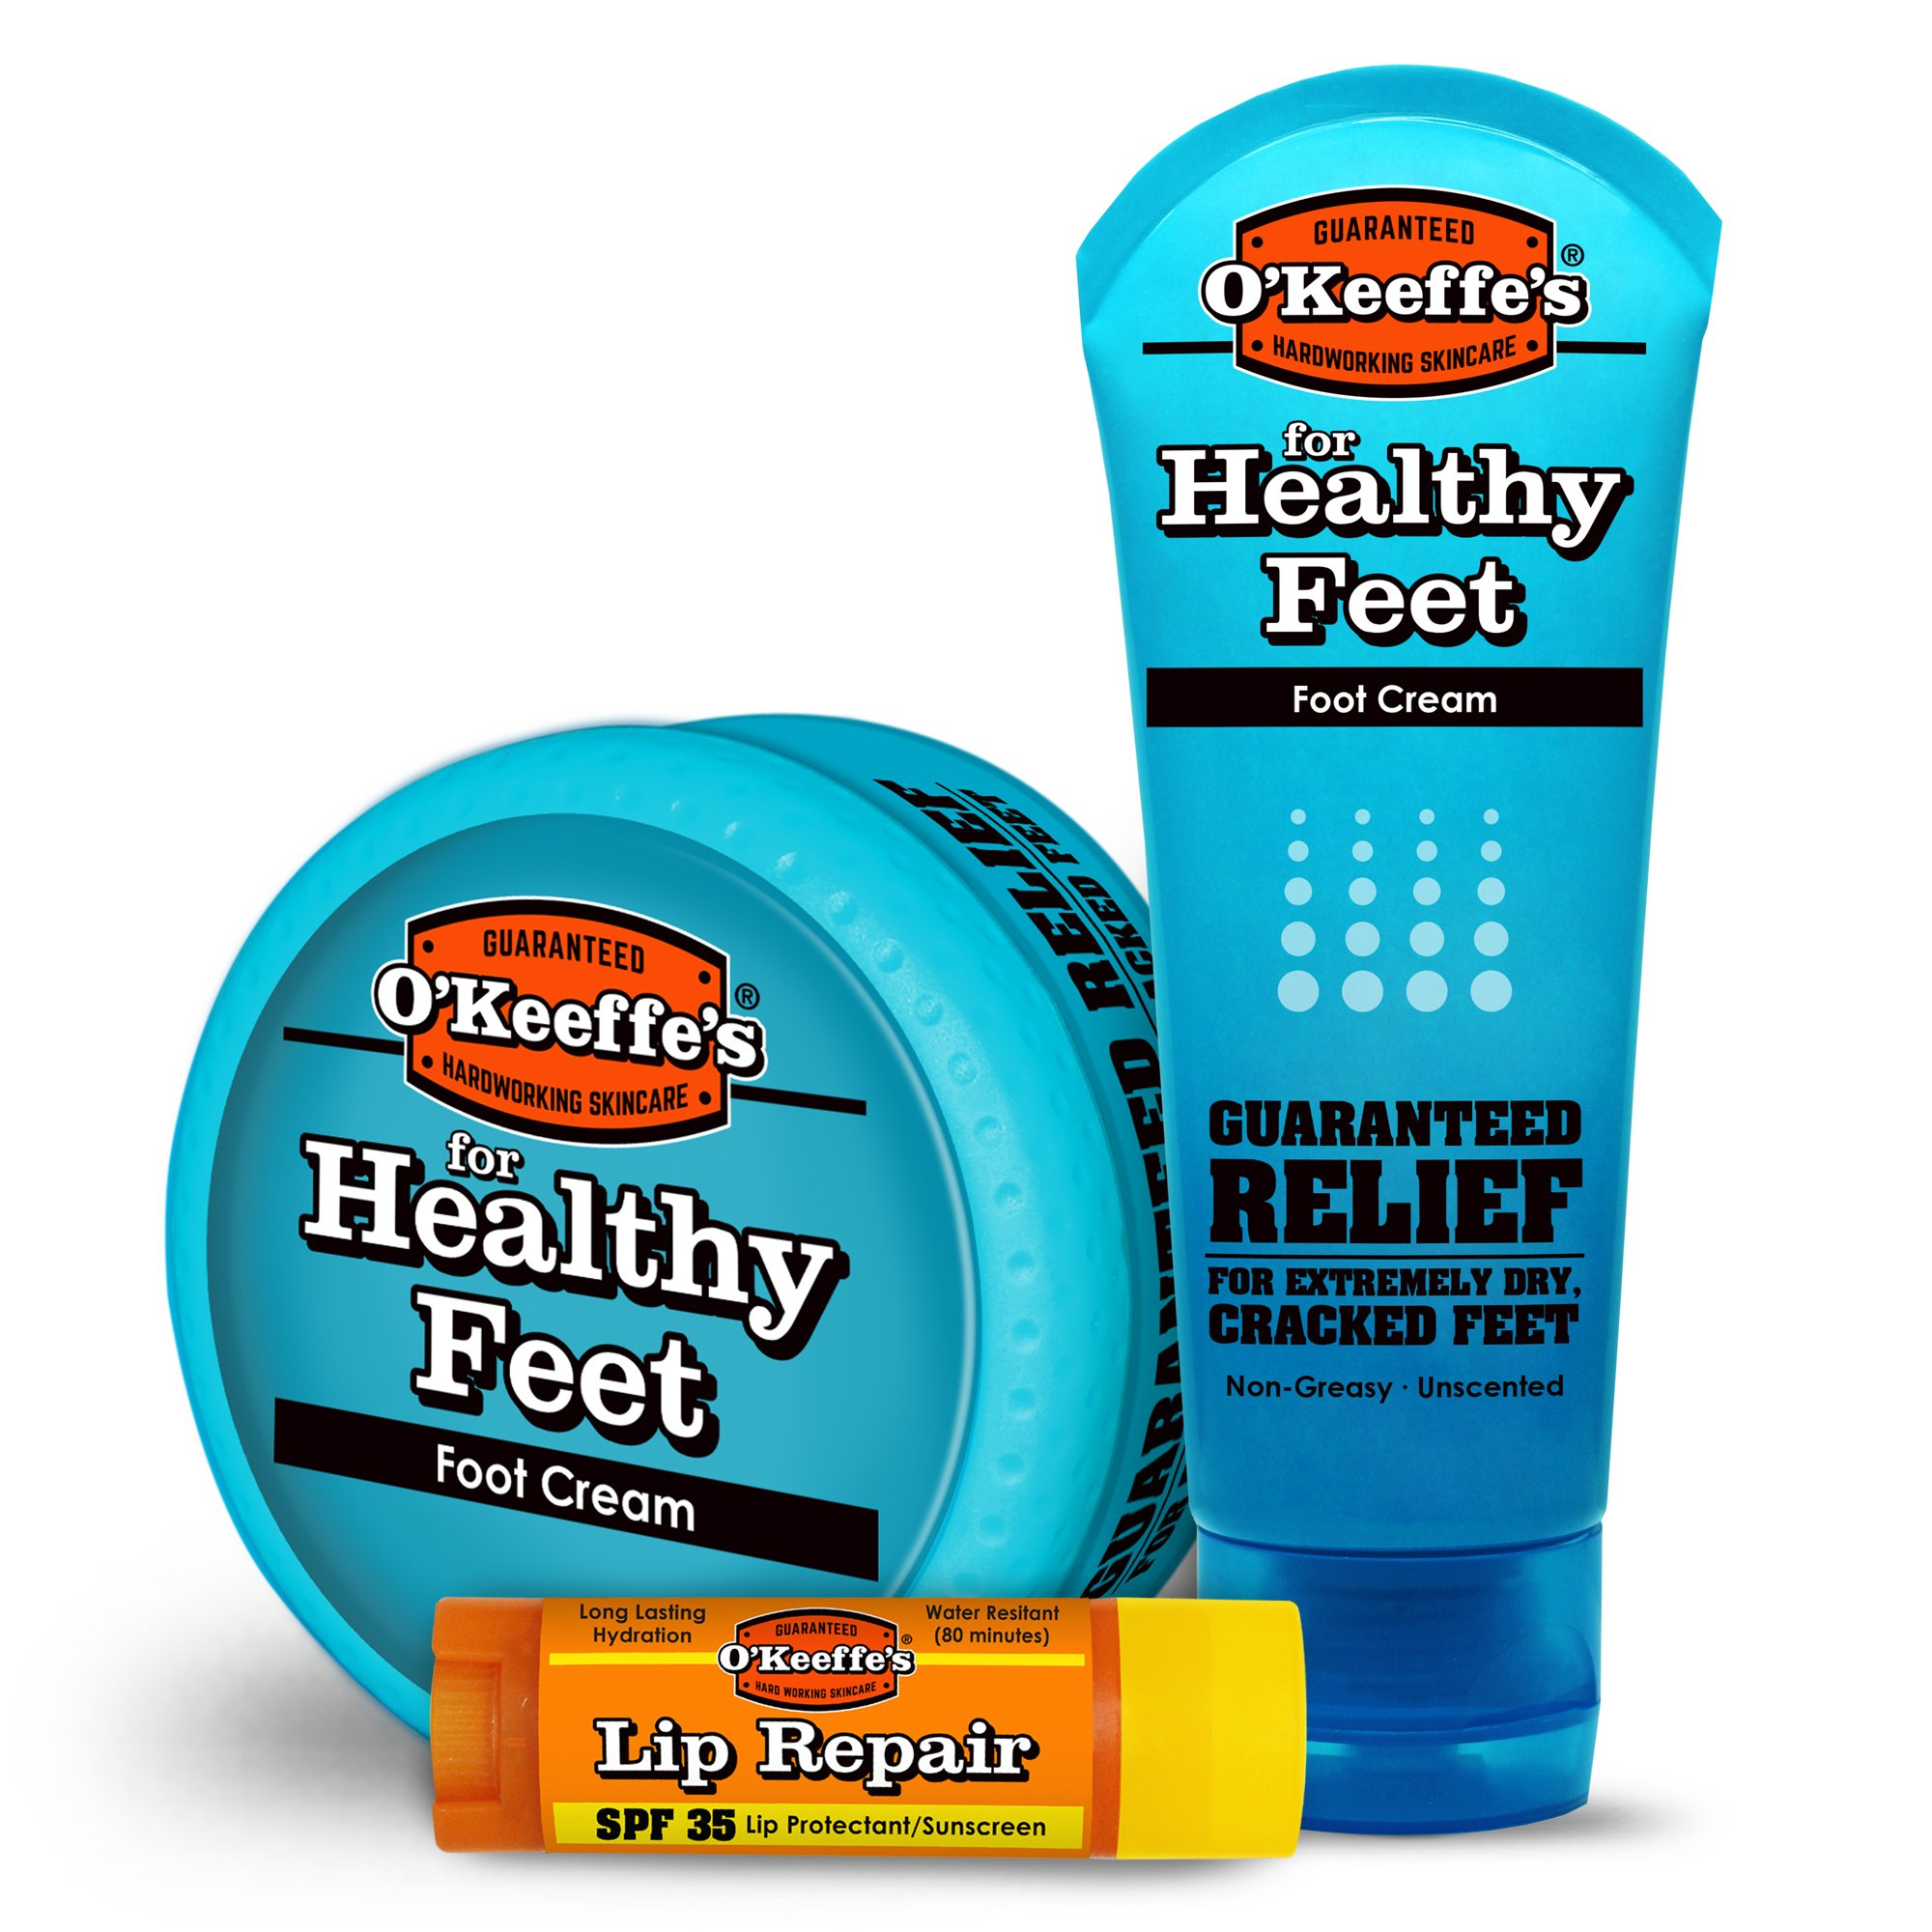 O'Keeffe's K0980058 Summer Variety Foot Cream, Lip Balm, various by O'Keeffe's